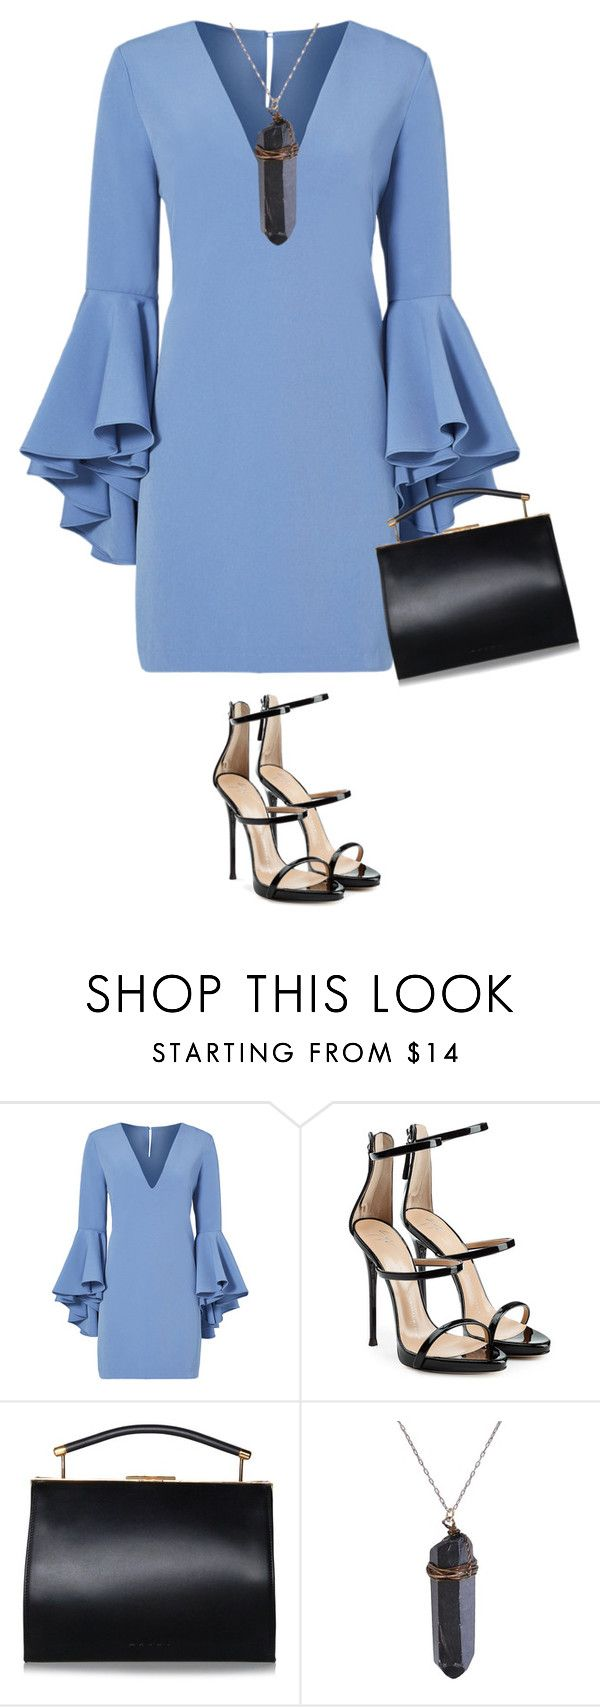 """Sin título #12004"" by marlilu on Polyvore featuring moda, Milly y Giuseppe Zanotti"